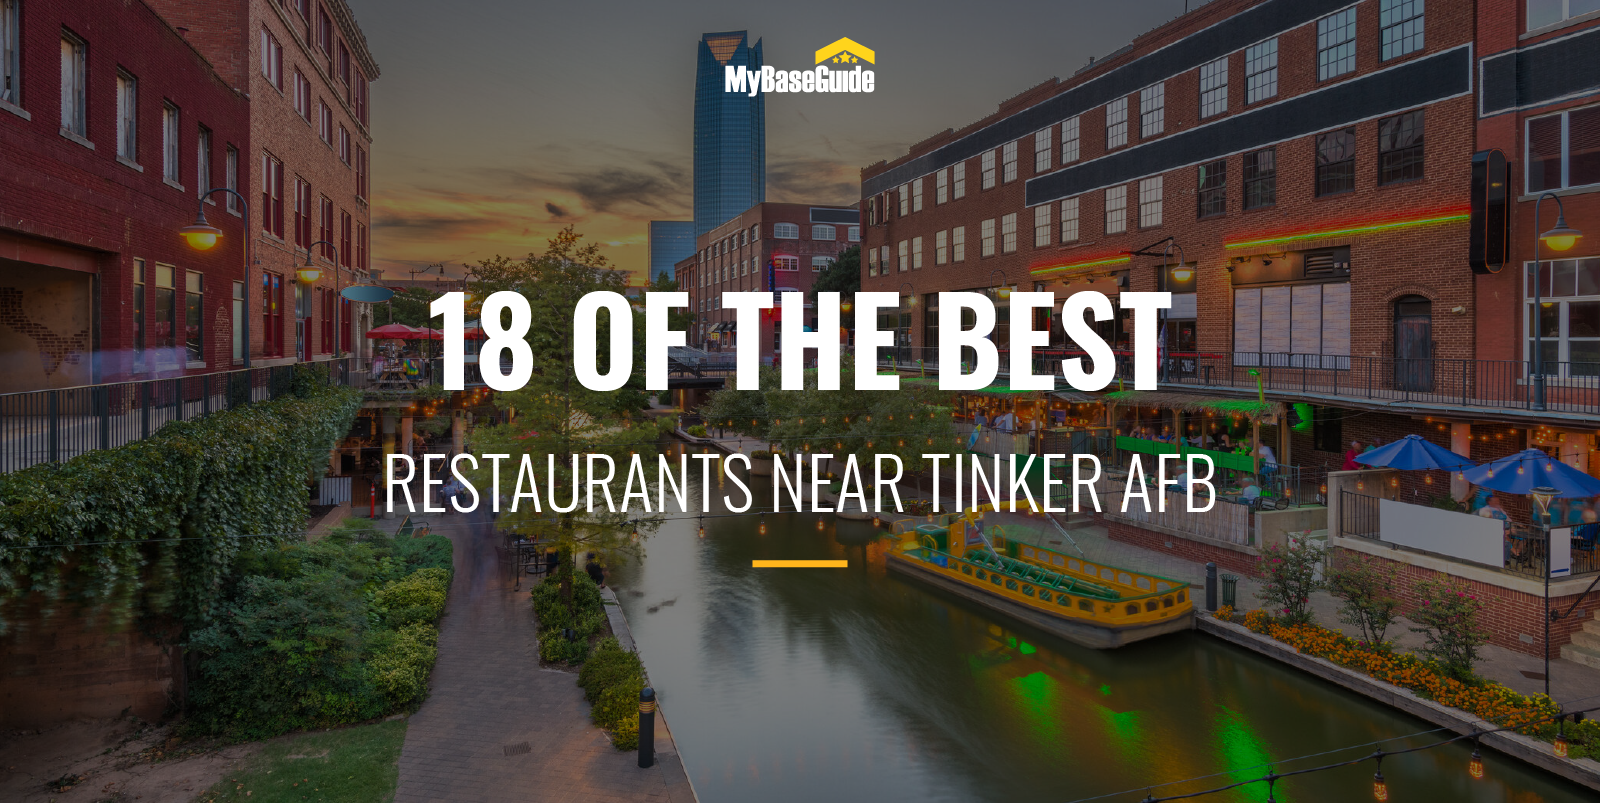 18 of the Best Restaurants Near Tinker AFB